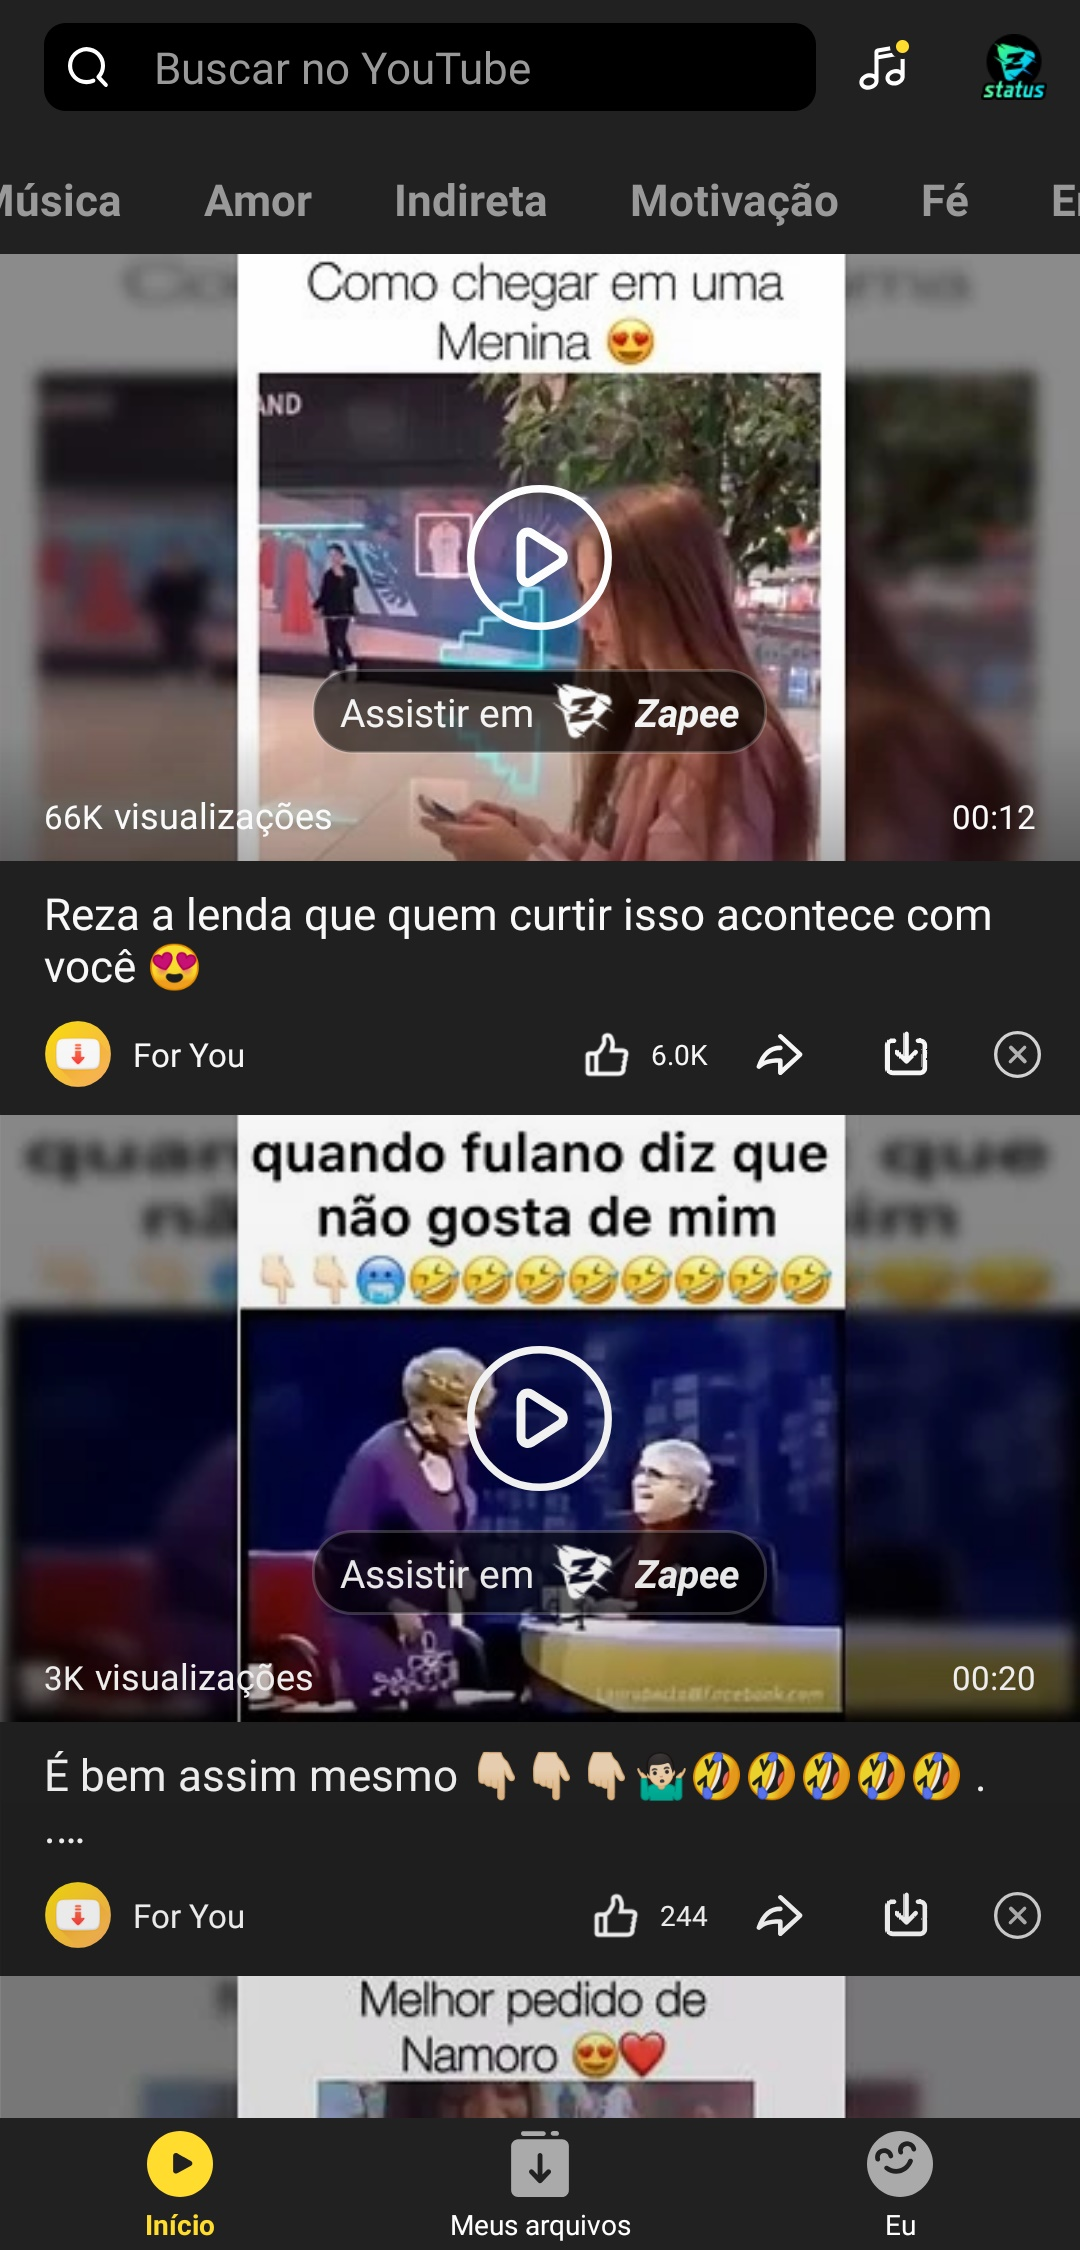 SnapTube - Imagem 1 do software